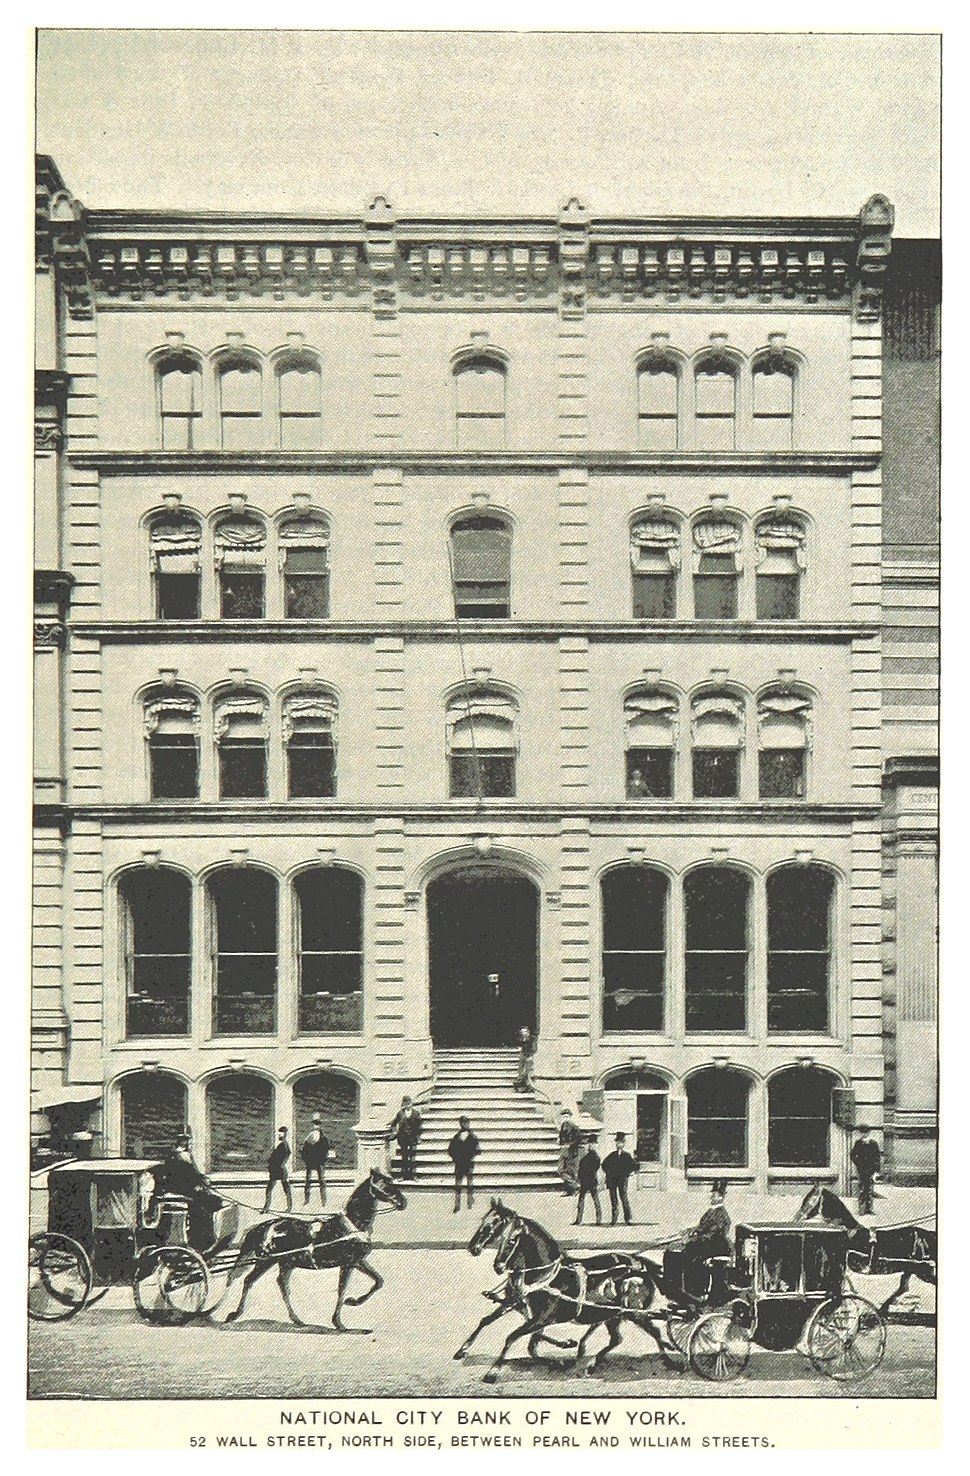 (King1893NYC) pg719 NATIONAL CITY BANK OF NEW YORK. 52 WALL STREET, NORTH SIDE, BETWEEN PEARL AND WILLIAM STREETS